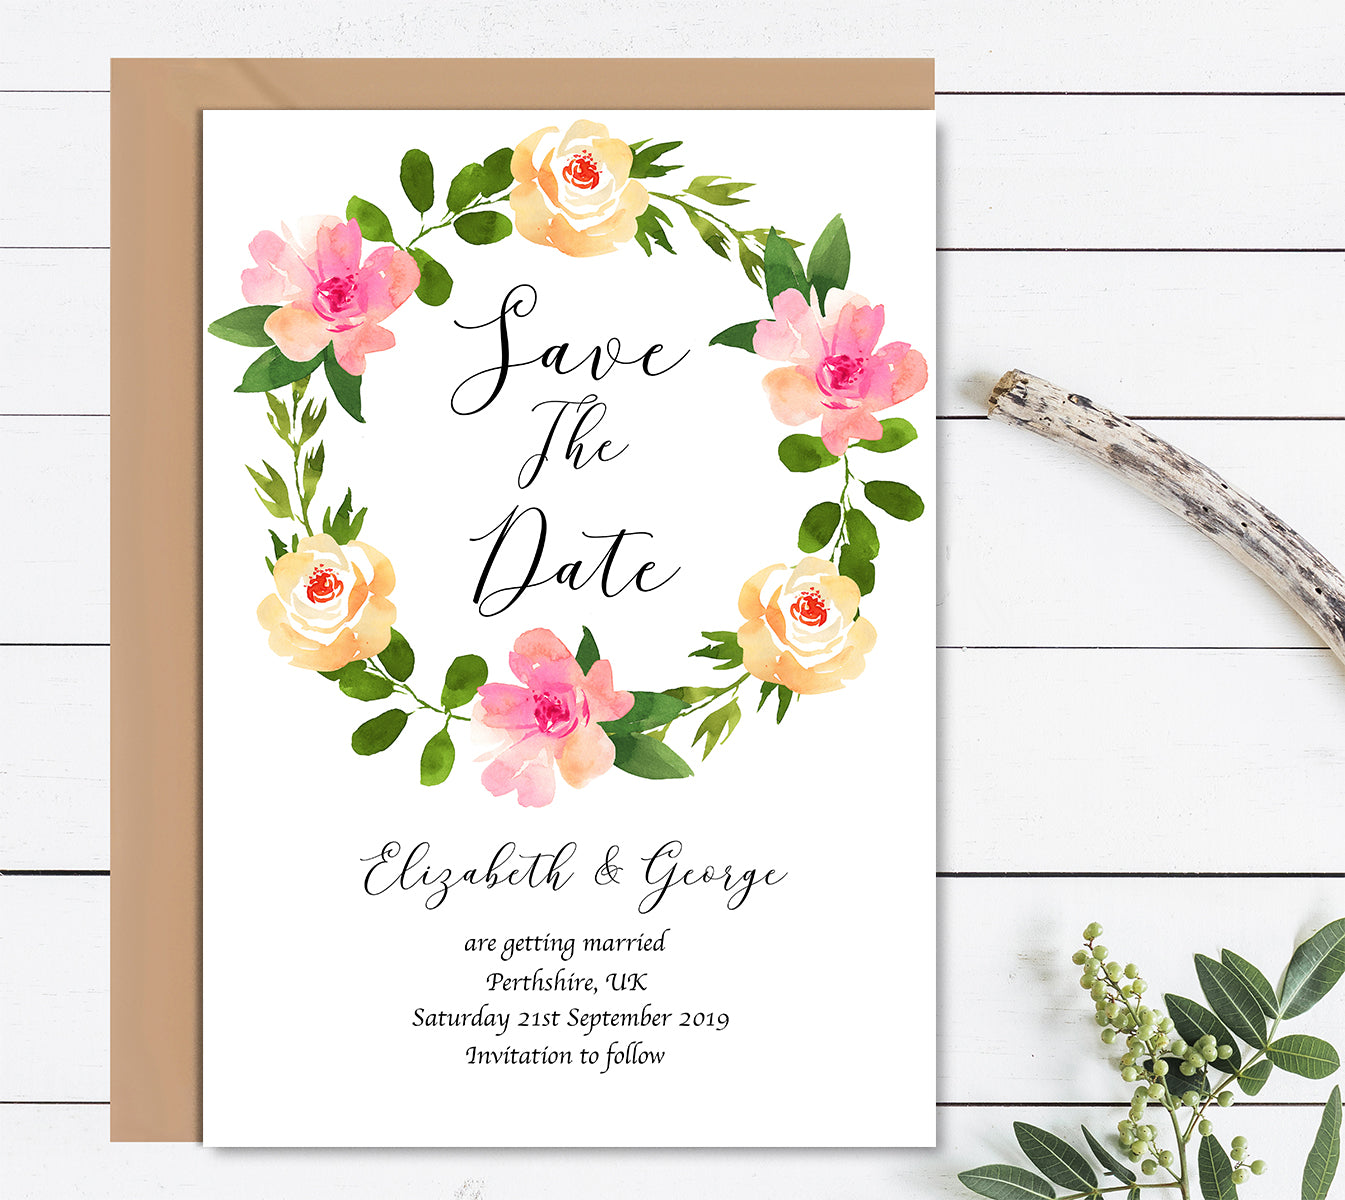 Watercolour Floral Wreath Save The Date Wedding Card-Wedding Stationary-Mode Prints